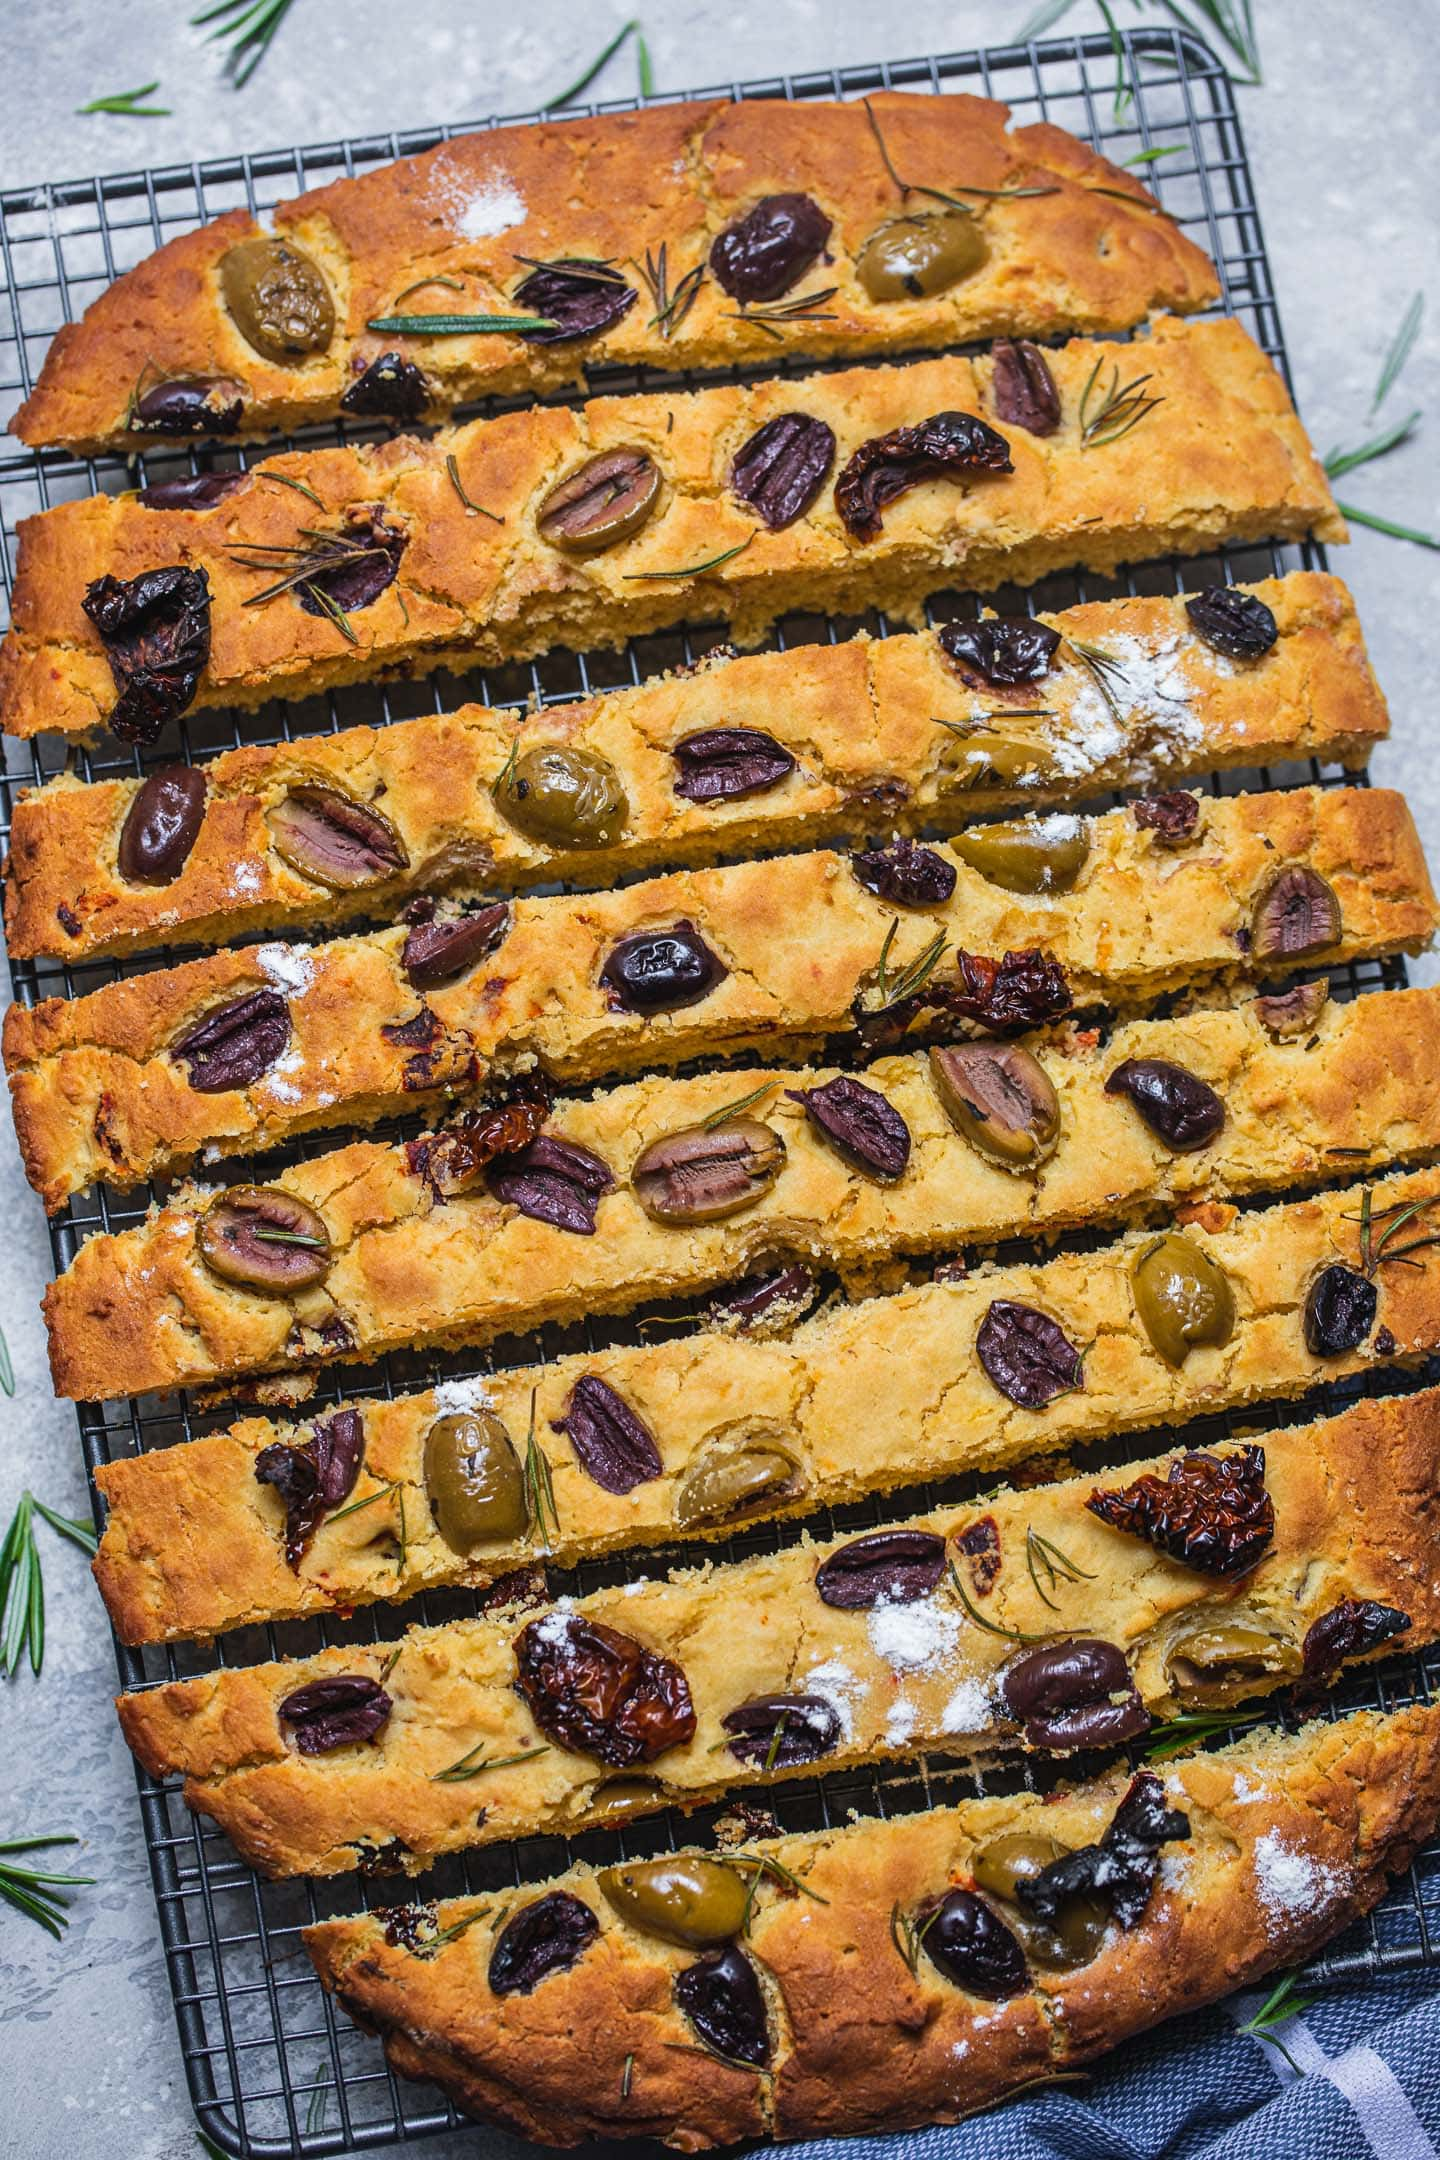 Olive and rosemary focacccia